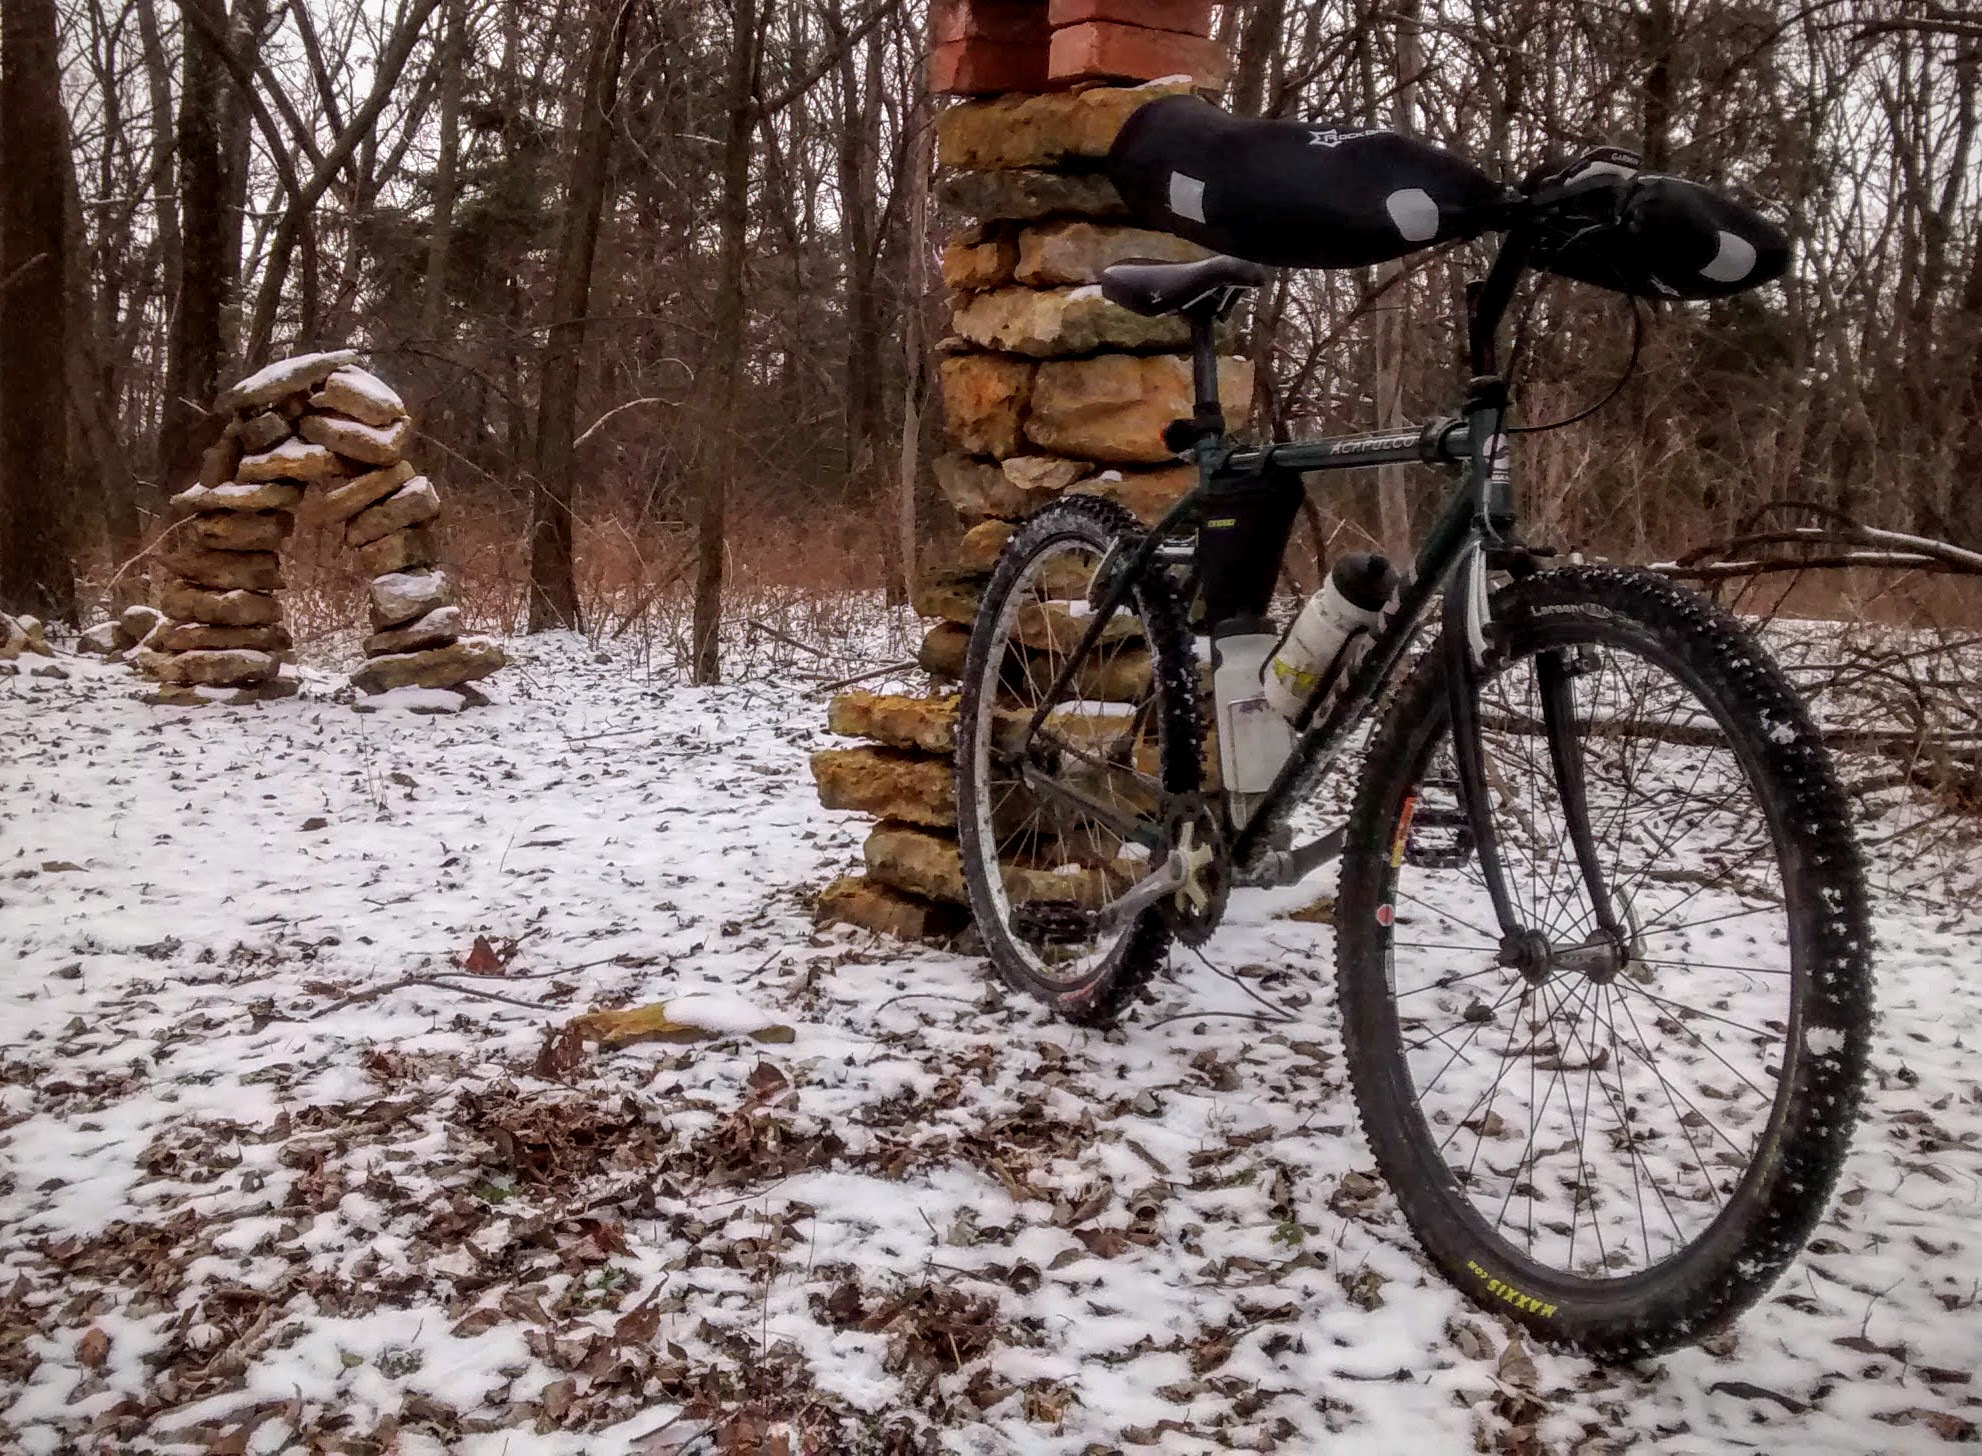 Winter Beauty at Lehigh Portland Trails